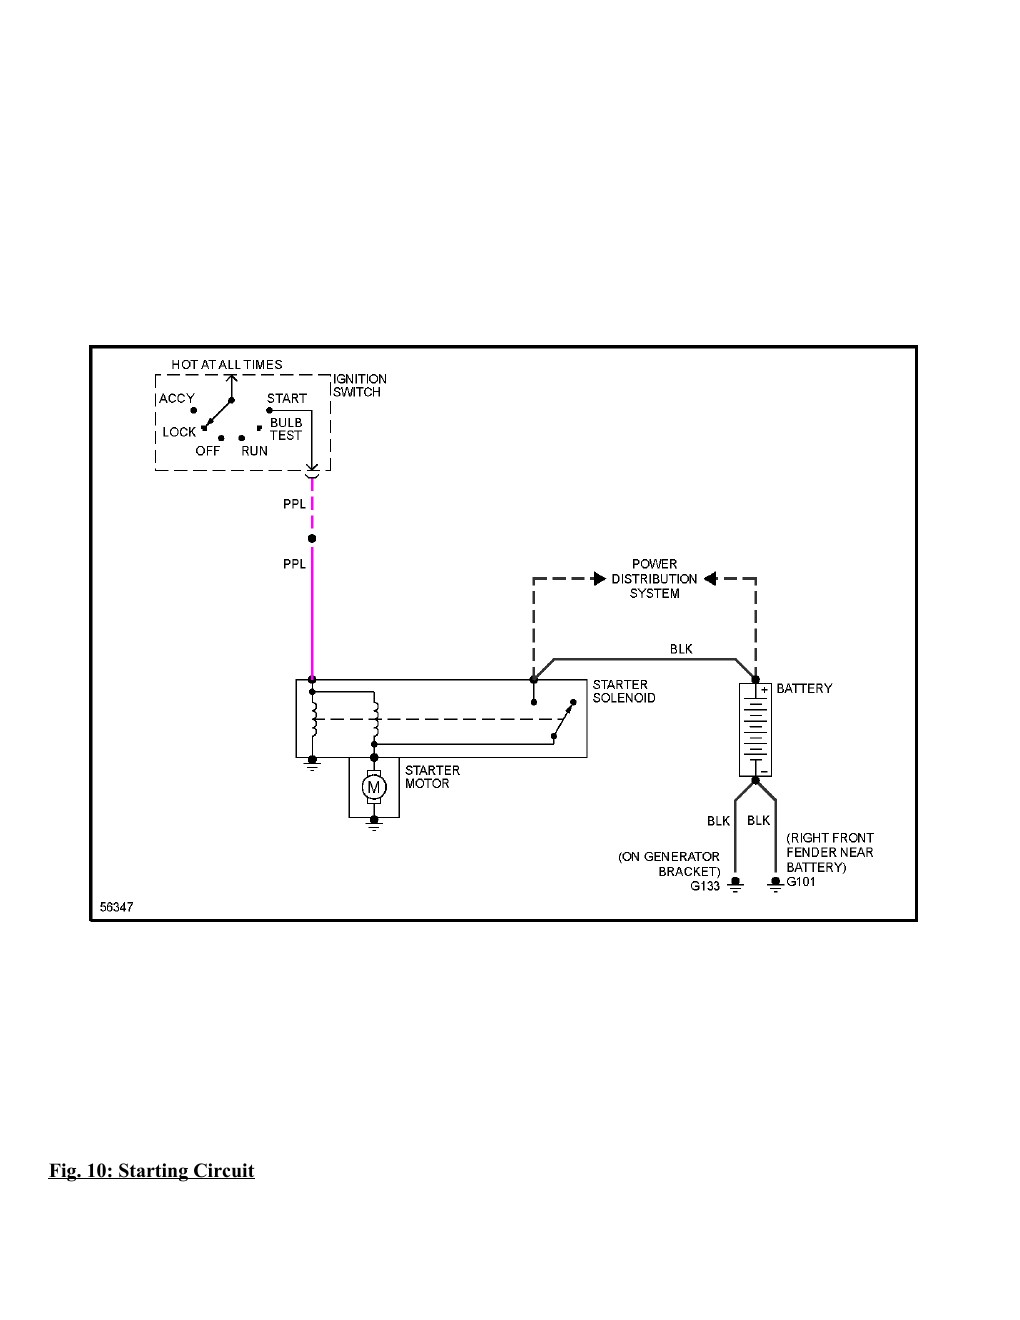 small resolution of 2001 monte carlo wiring diagram also 2000 monte carlo wiring diagram 2001 chevy monte carlo engine